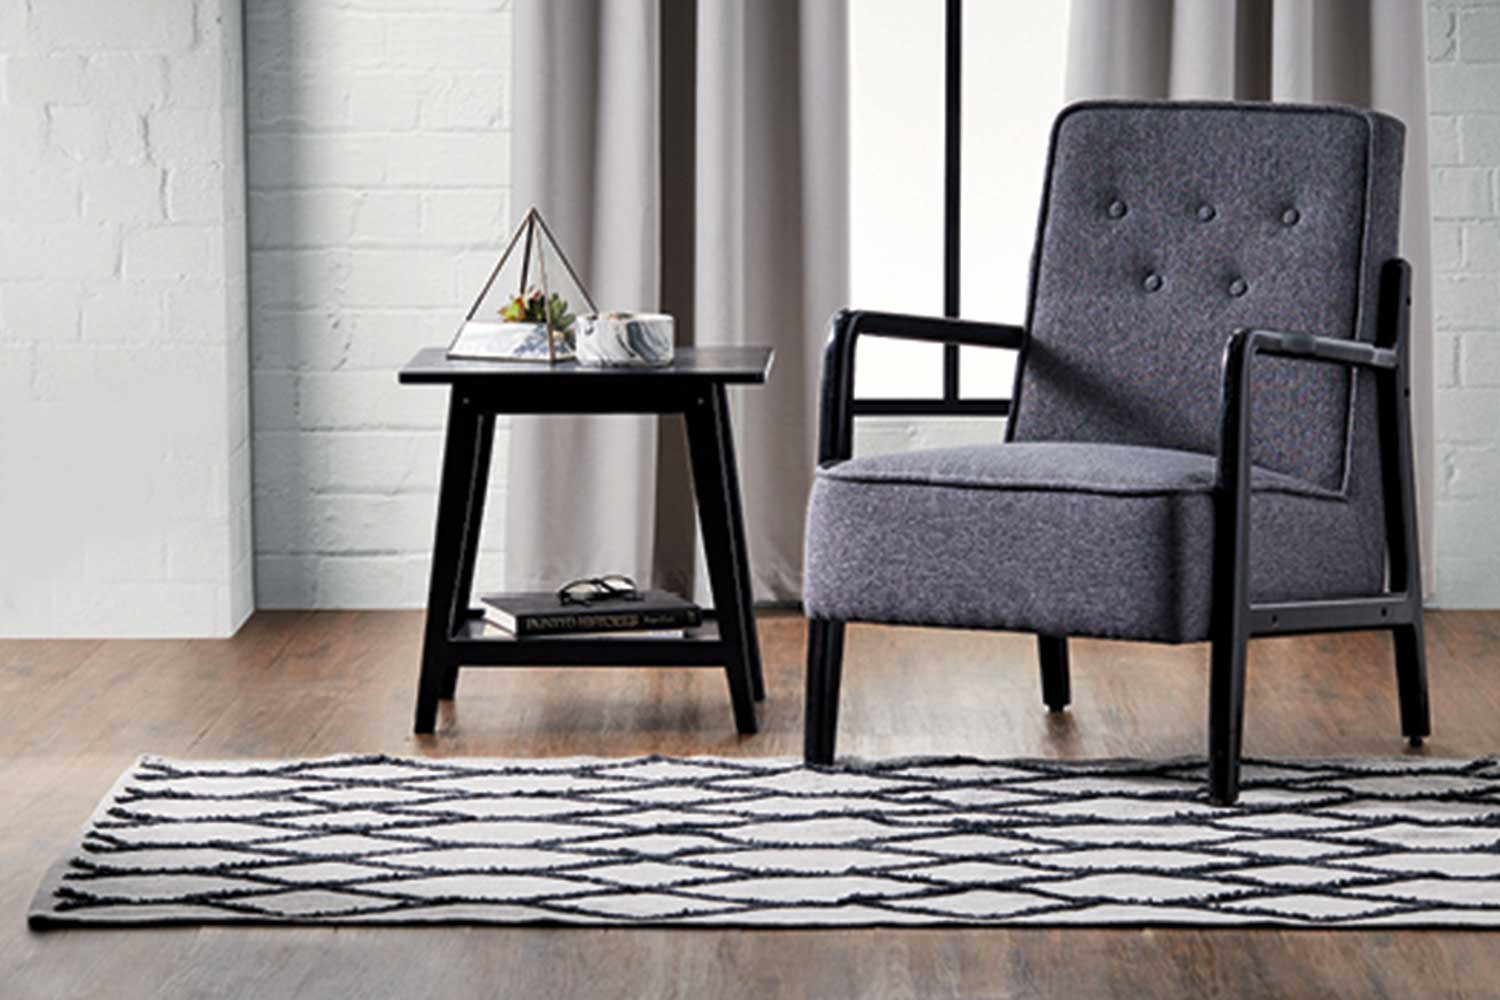 electric lift chair aldi upholstery cost s homewares bonanza makeover your living room for less than 300 home beautiful magazine australia